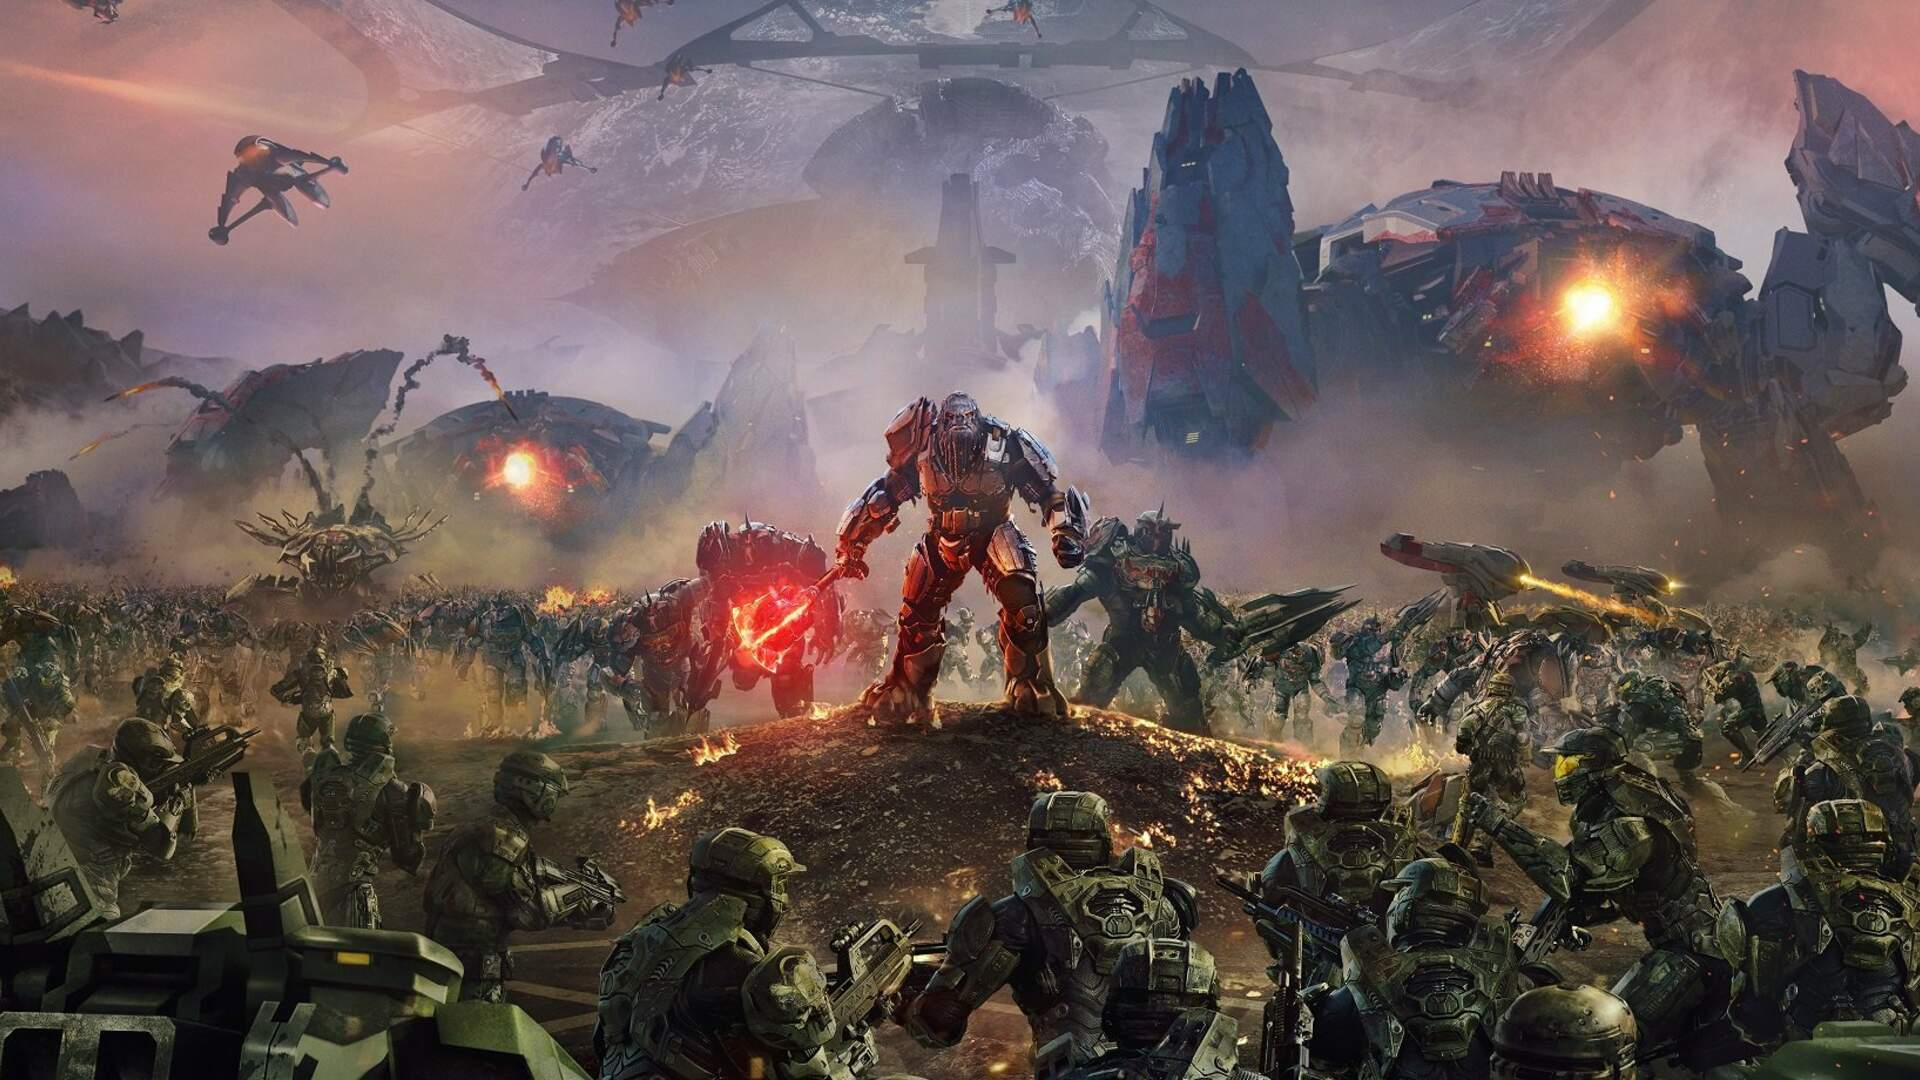 A New Halo Teaser Indicates Infinite Might Have Ties to Halo Wars 2